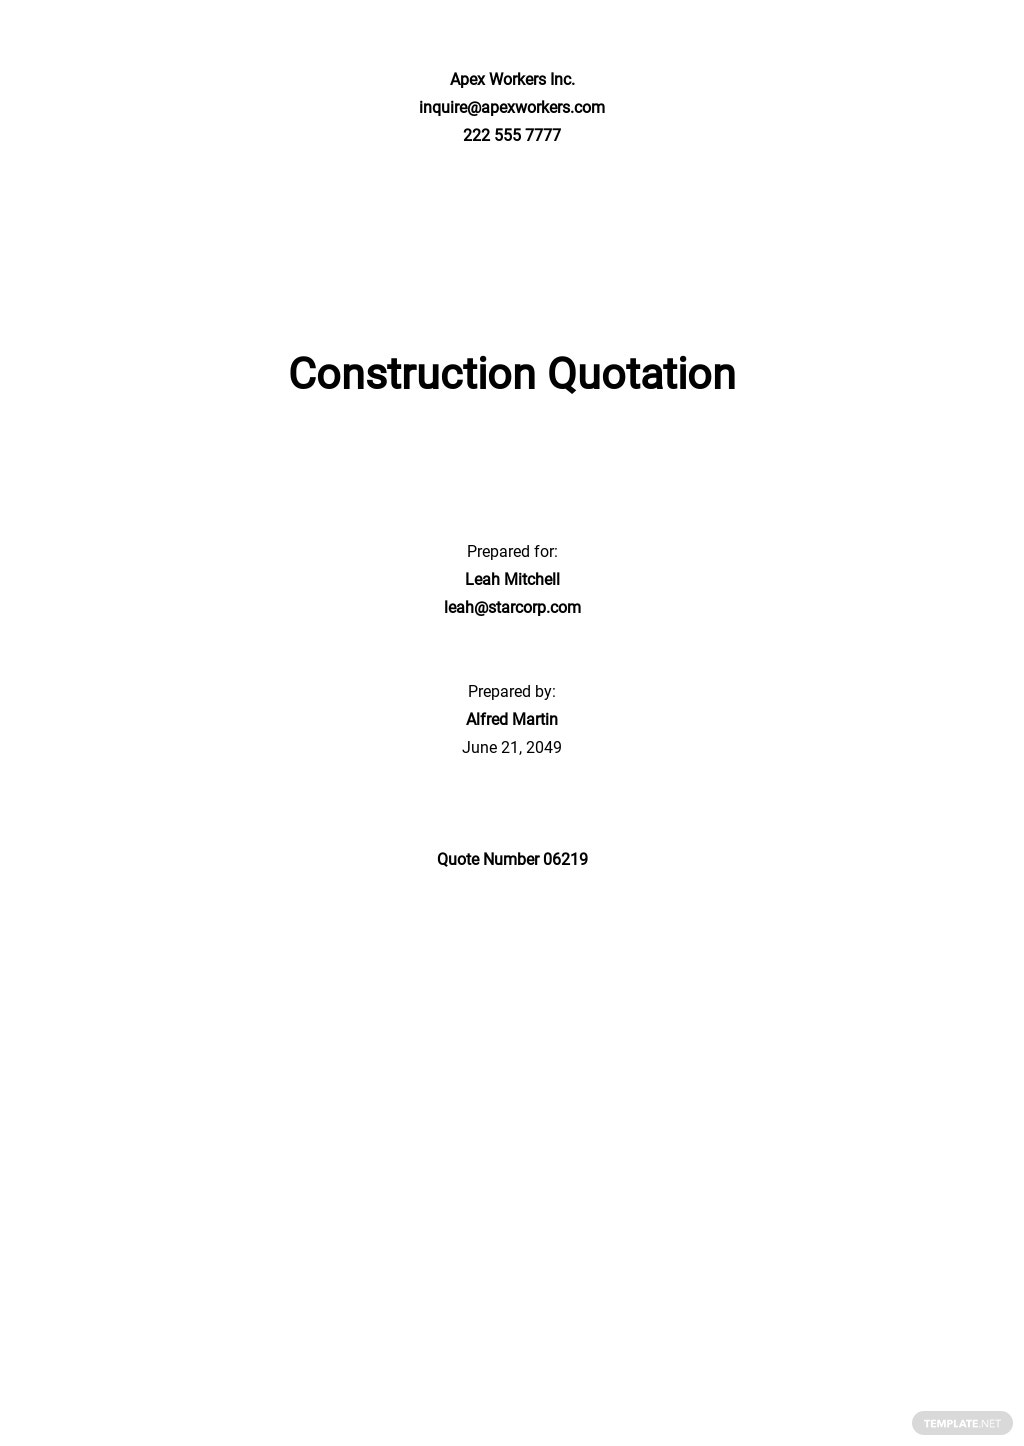 Construction Company Quotation Template